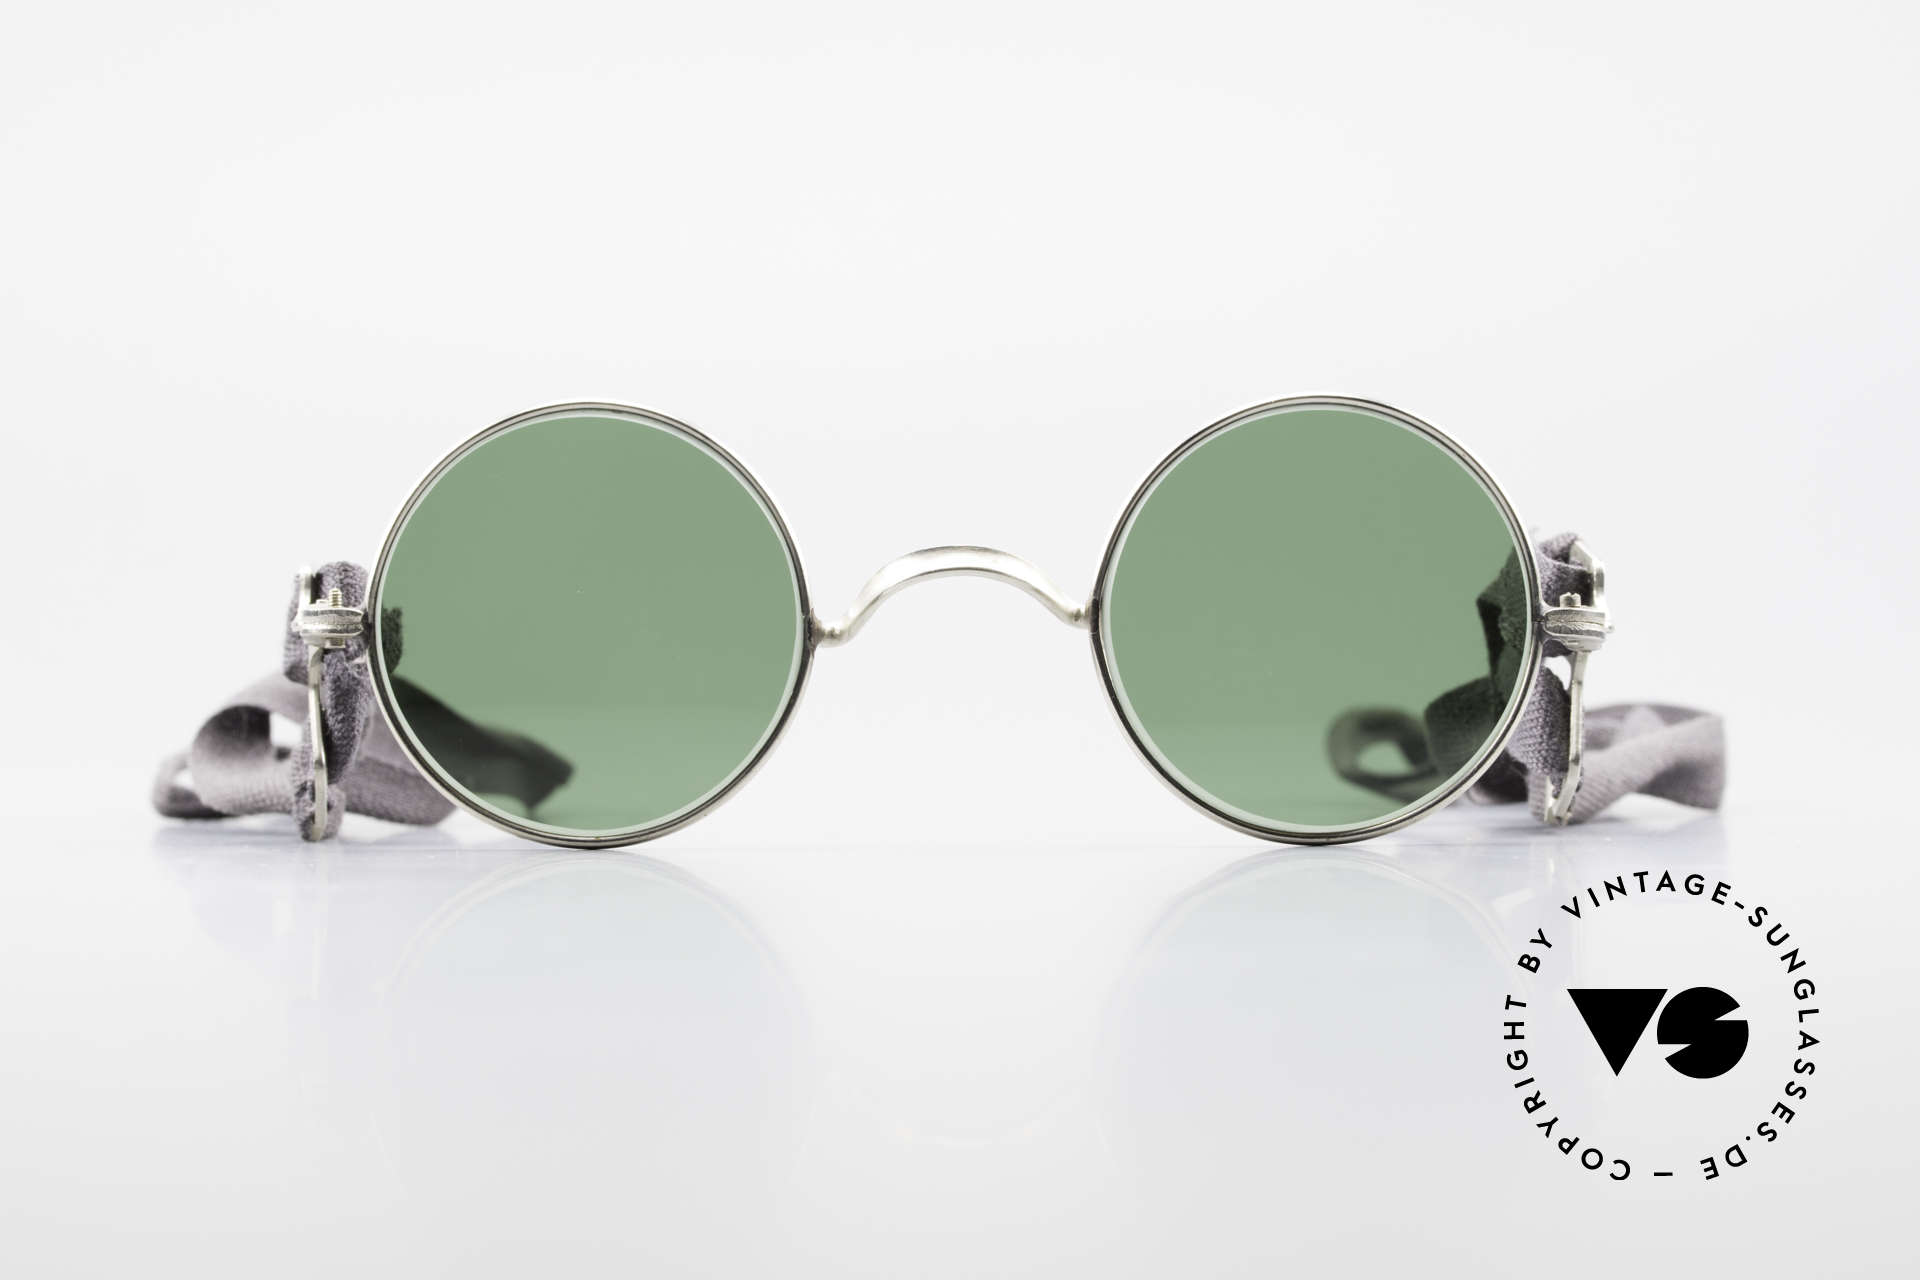 Militärbrille Round Old Army Military Sunglasses, straps instead of temples; simple & functional, Made for Men